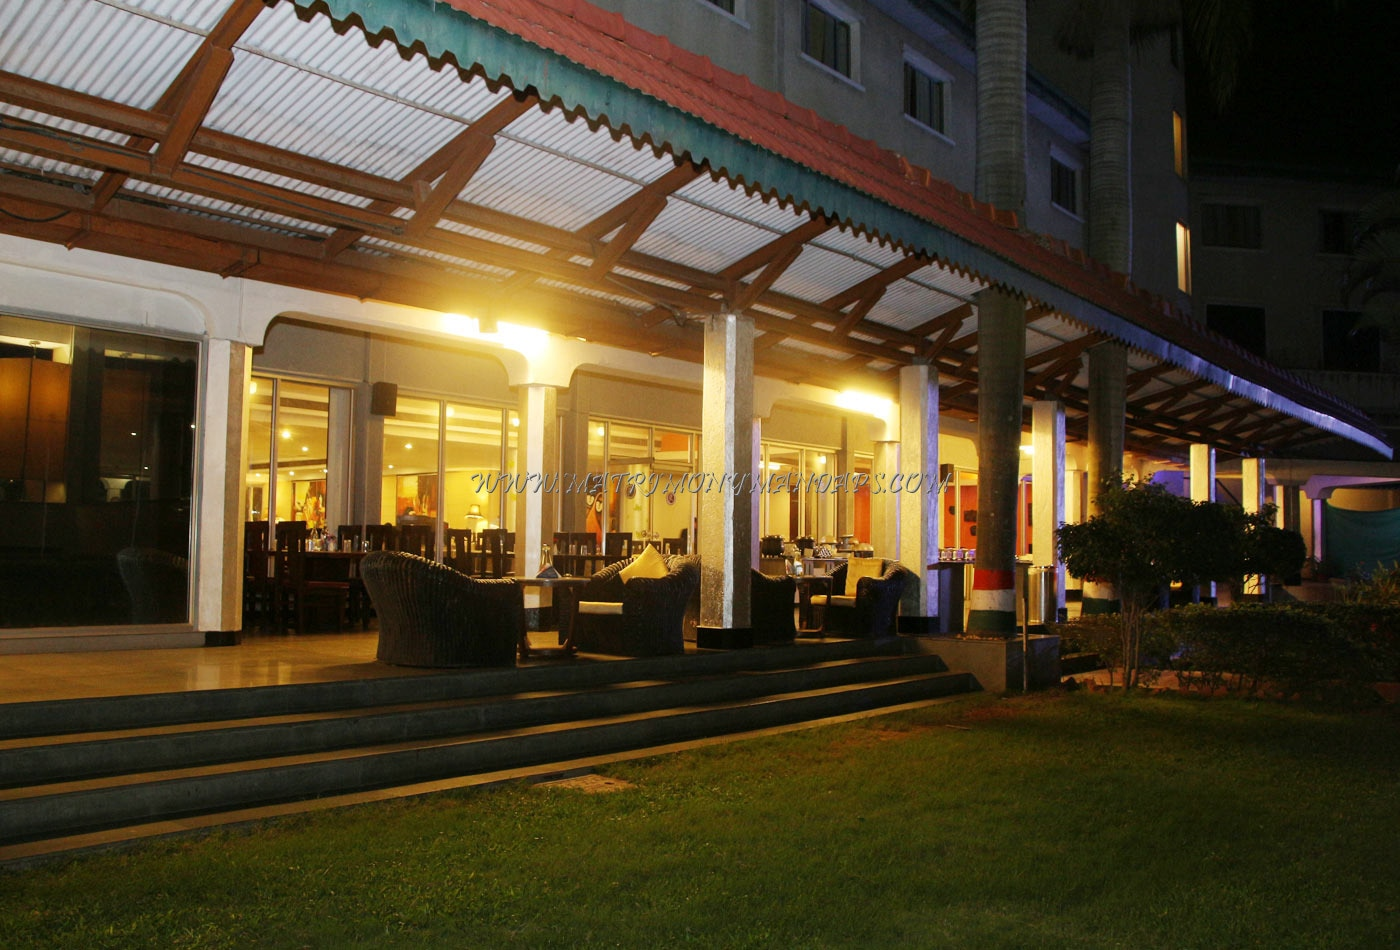 Dialogue Ramee Guestline Hotels And Resorts - Pre-function Area